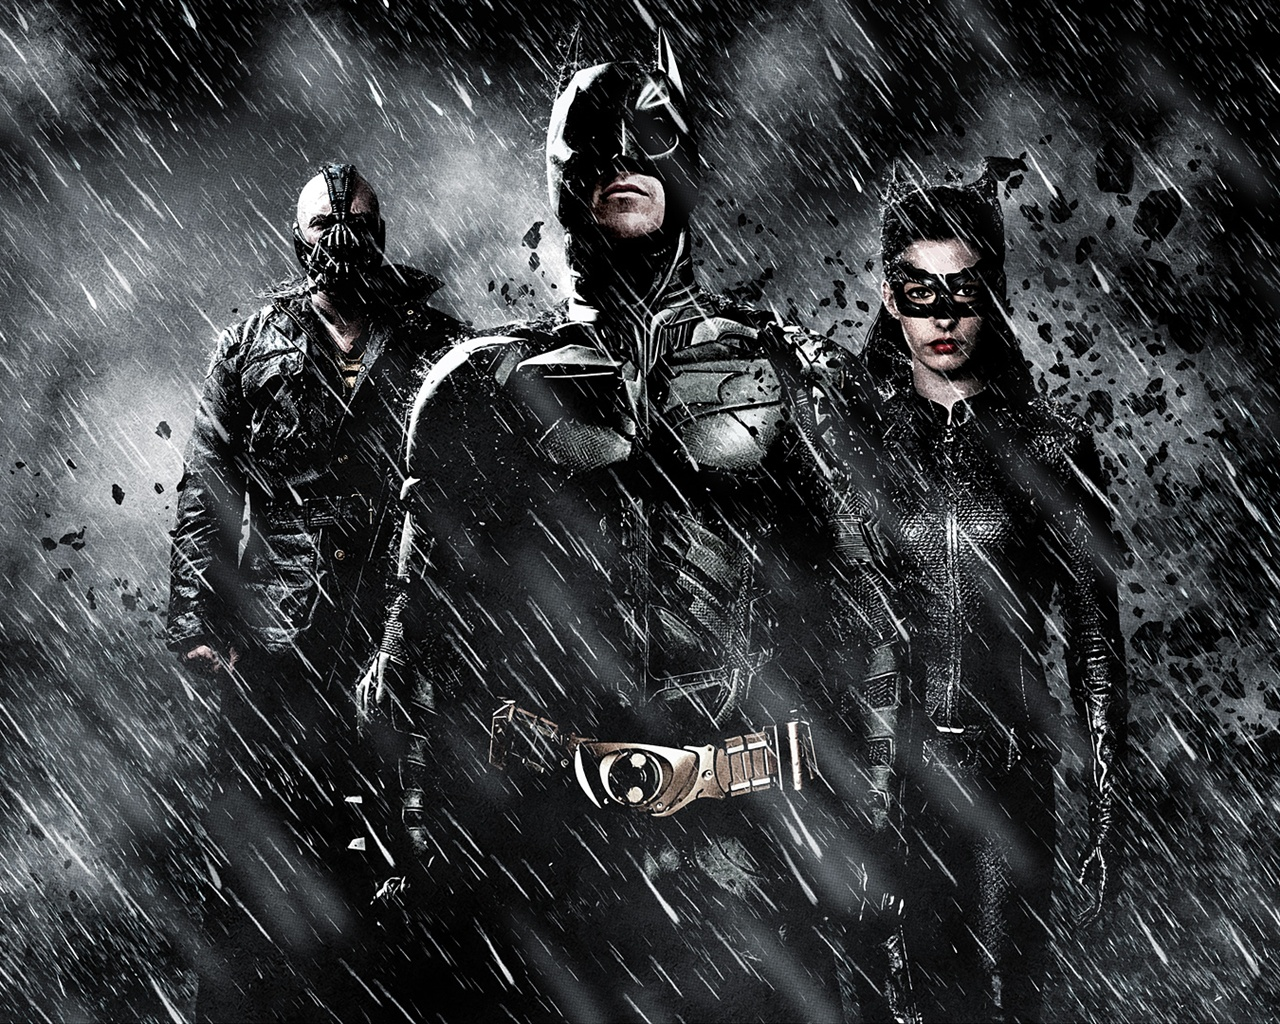 HD Wallpapers and Desktop Backgrounds Dark Knight Rises [2012] HD 1280x1024